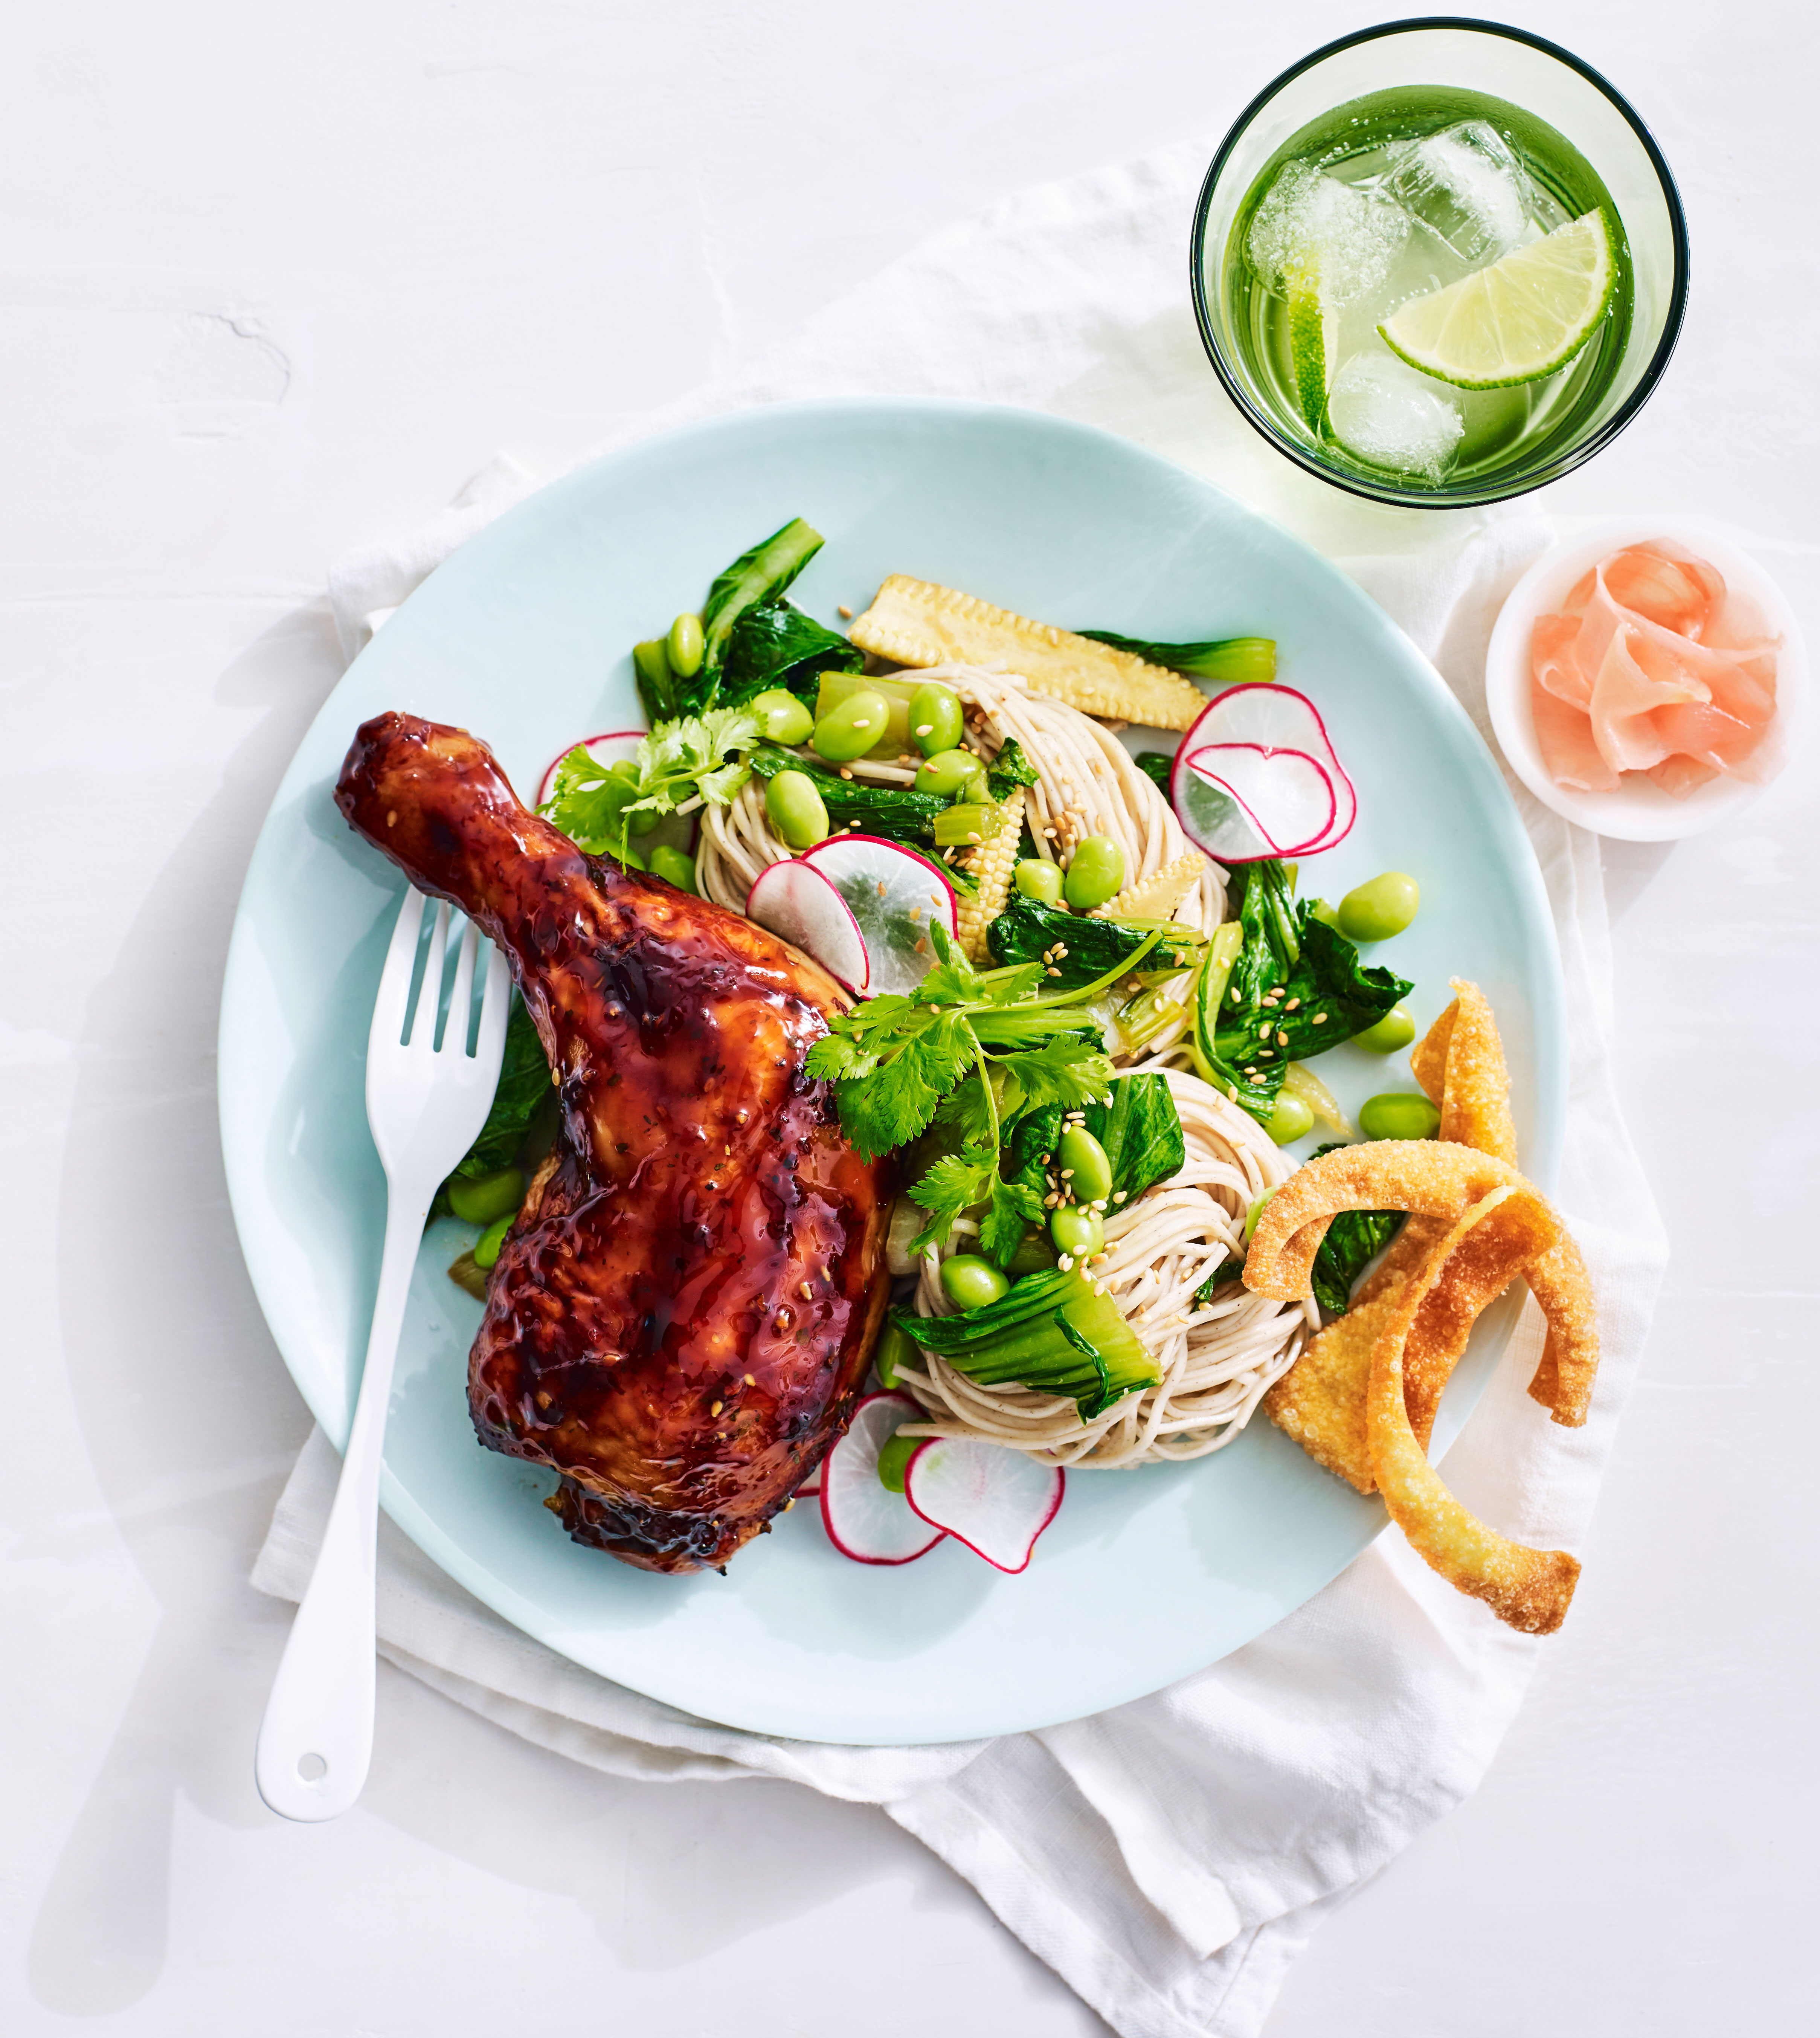 Lilydale Teriyaki Roast Chicken with Soba Noodles and Asian Greens